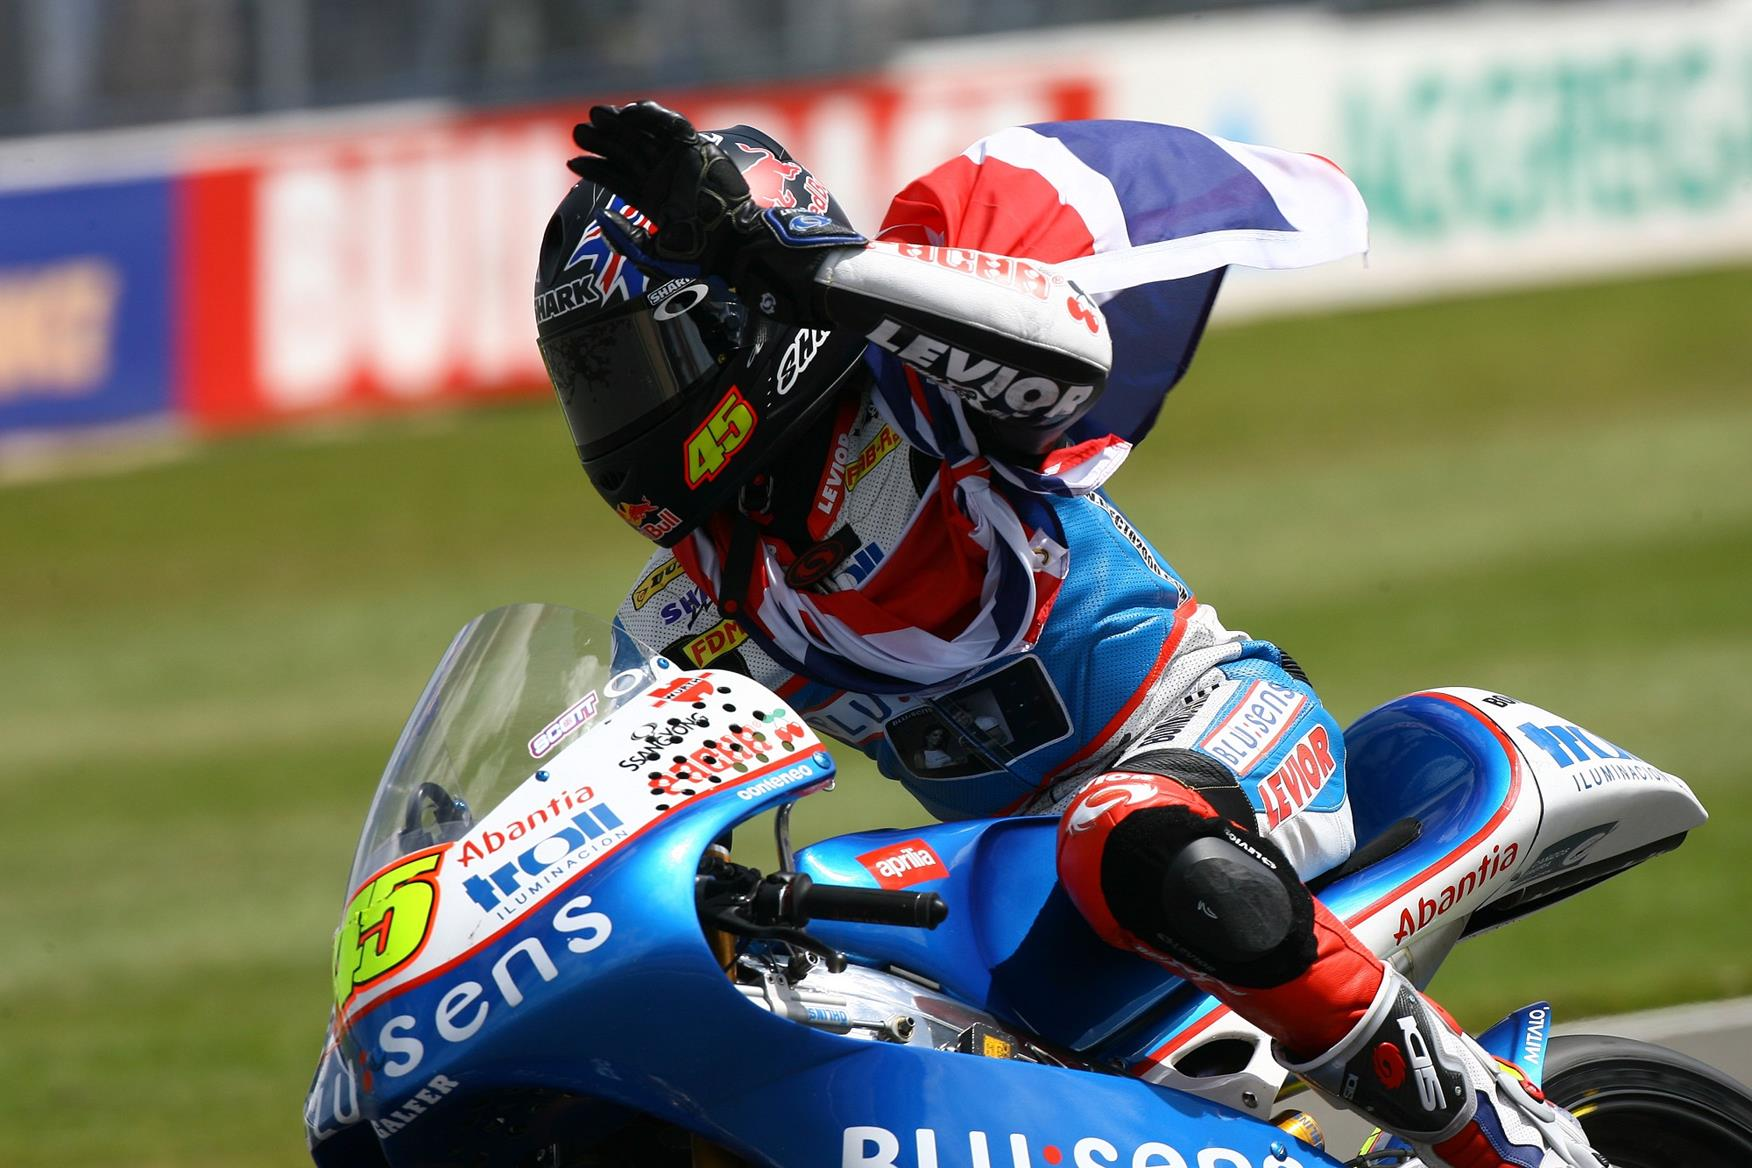 Scott Redding celebrates his 125 GP victory at Donington Park